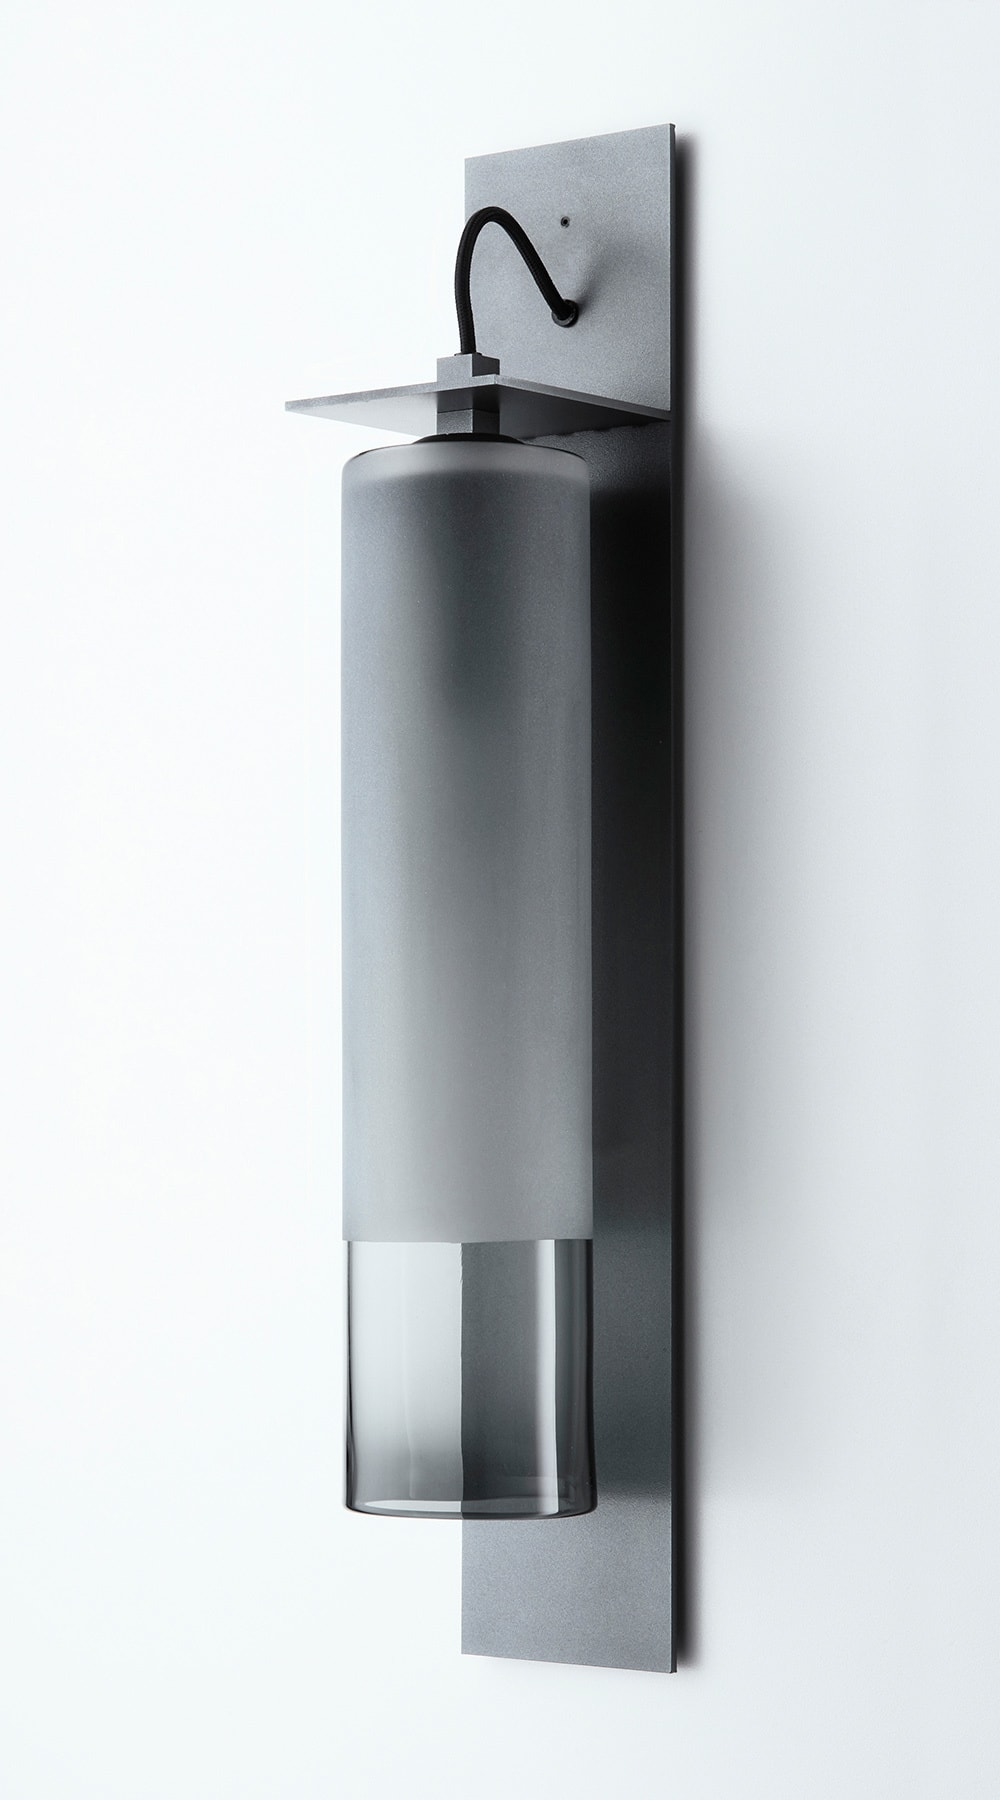 long wall sconce lighting.  wall wall sconcetallarticolo blackgrey frostblack flex on long sconce lighting